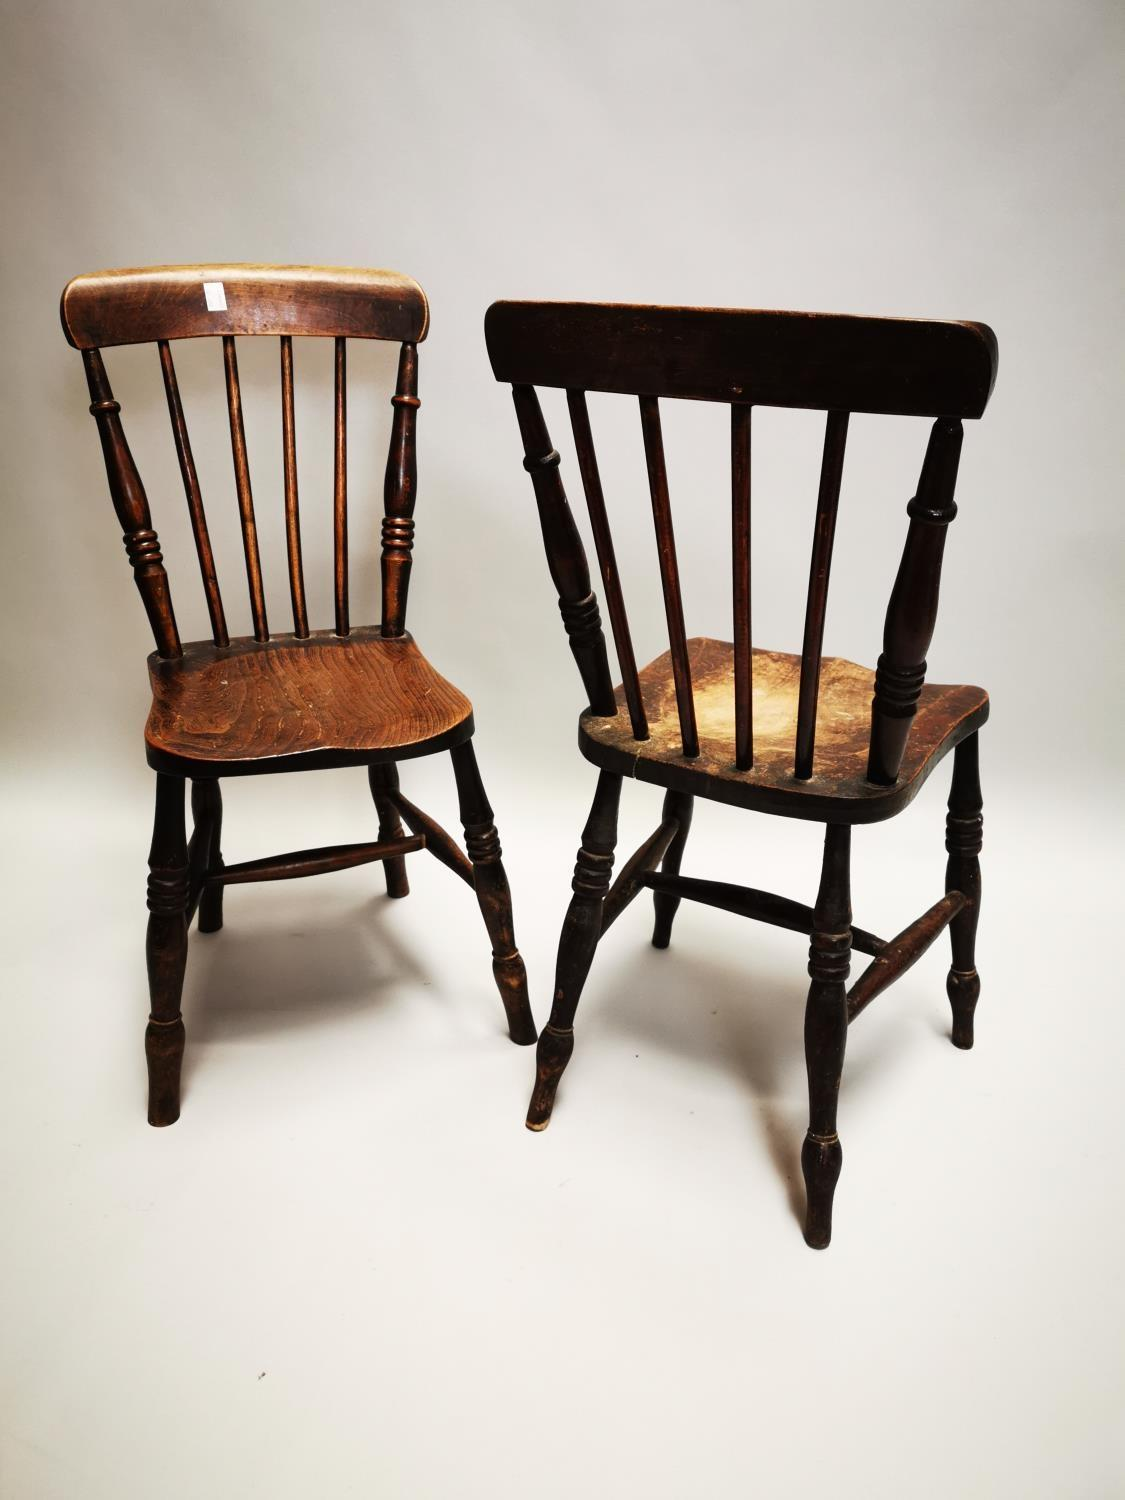 Pair of 19th C. pine and elm kitchen chairs - Image 7 of 8